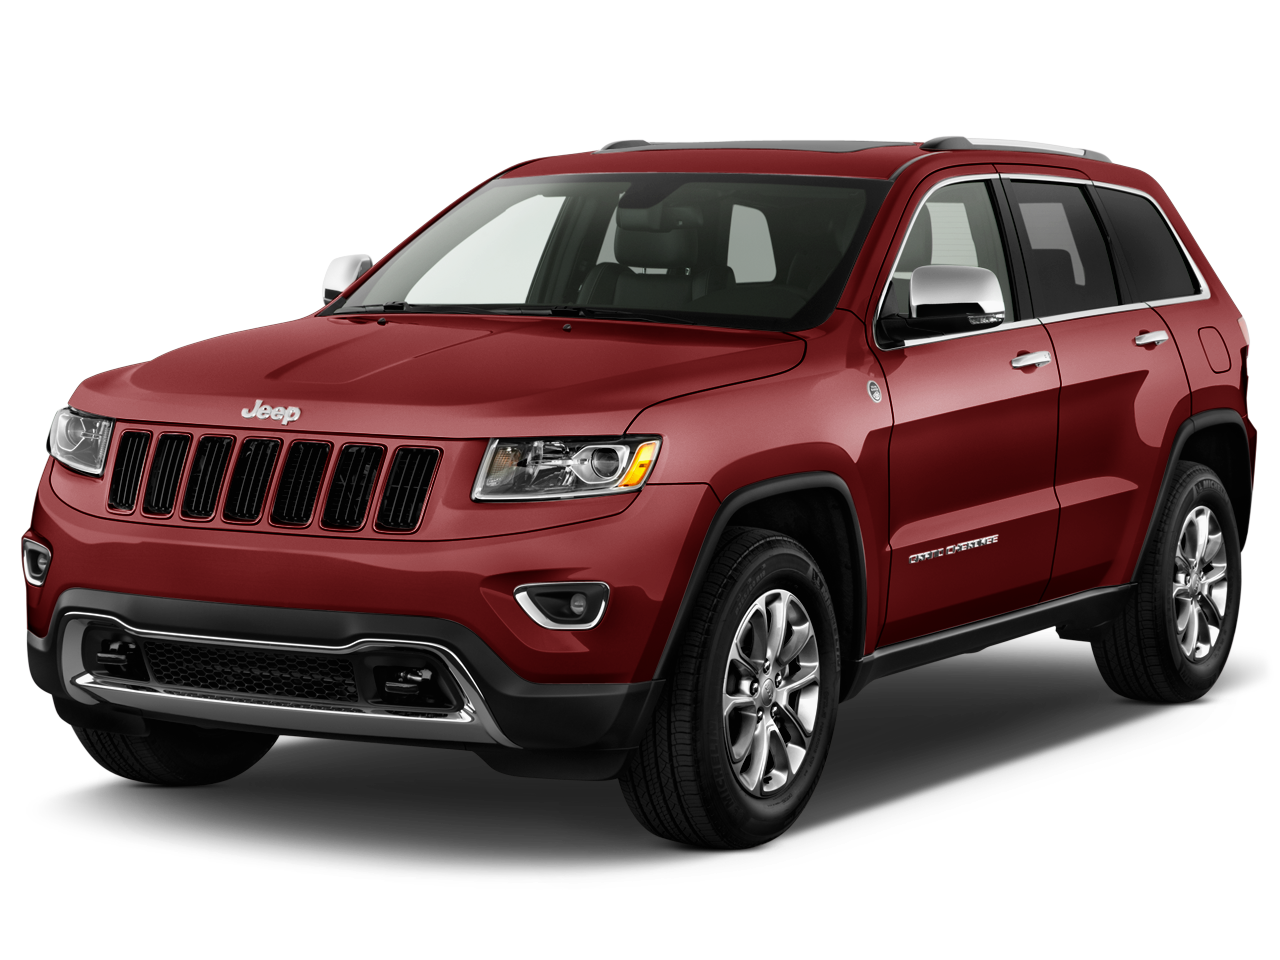 used 2014 jeep grand cherokee limited near fenton mi lafontaine chevy. Black Bedroom Furniture Sets. Home Design Ideas